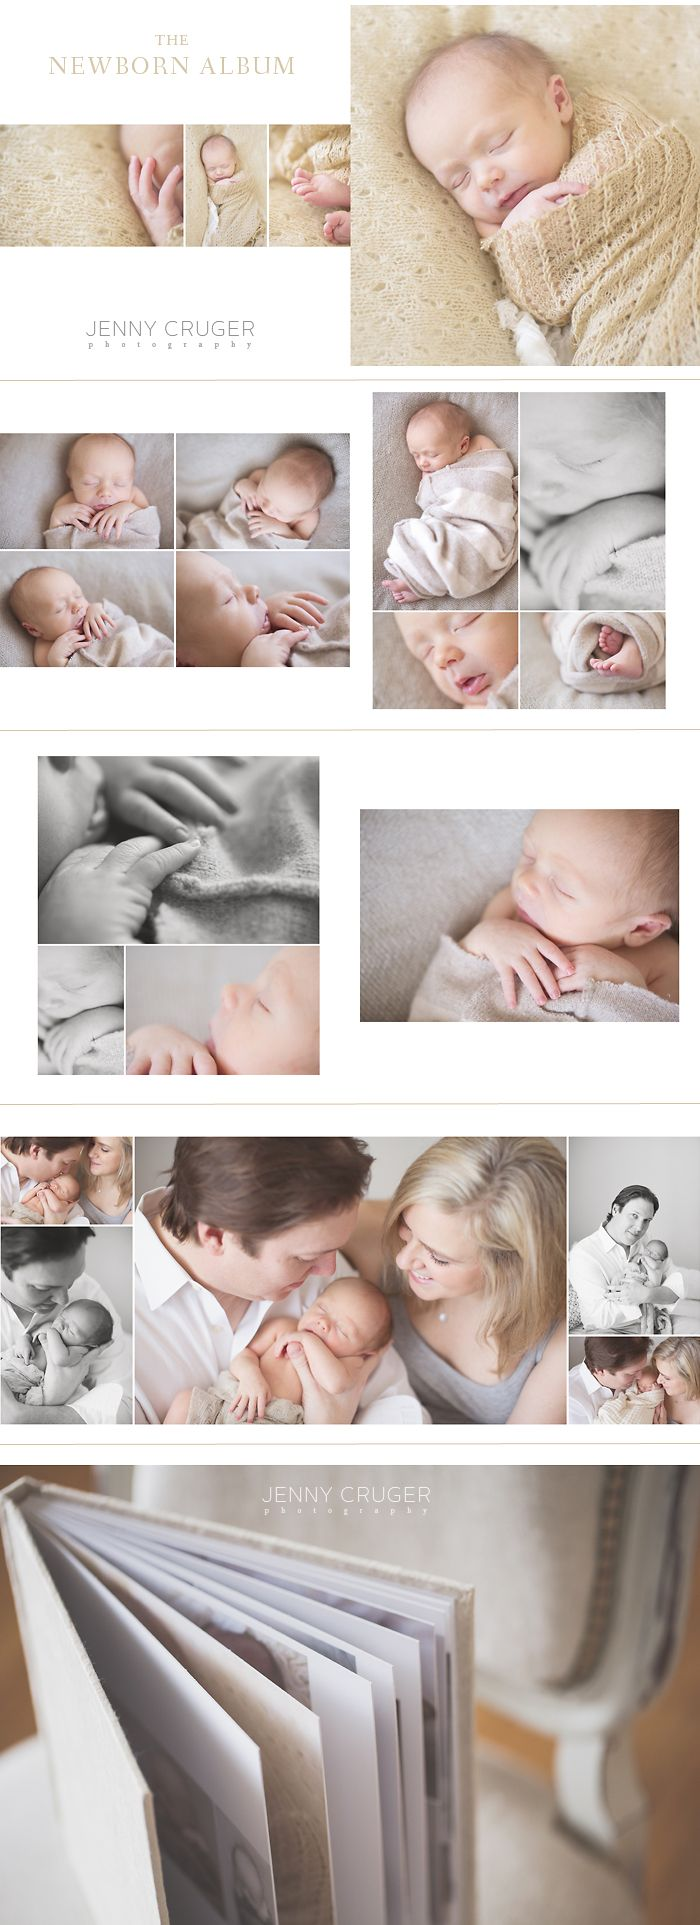 franklin newborn photography